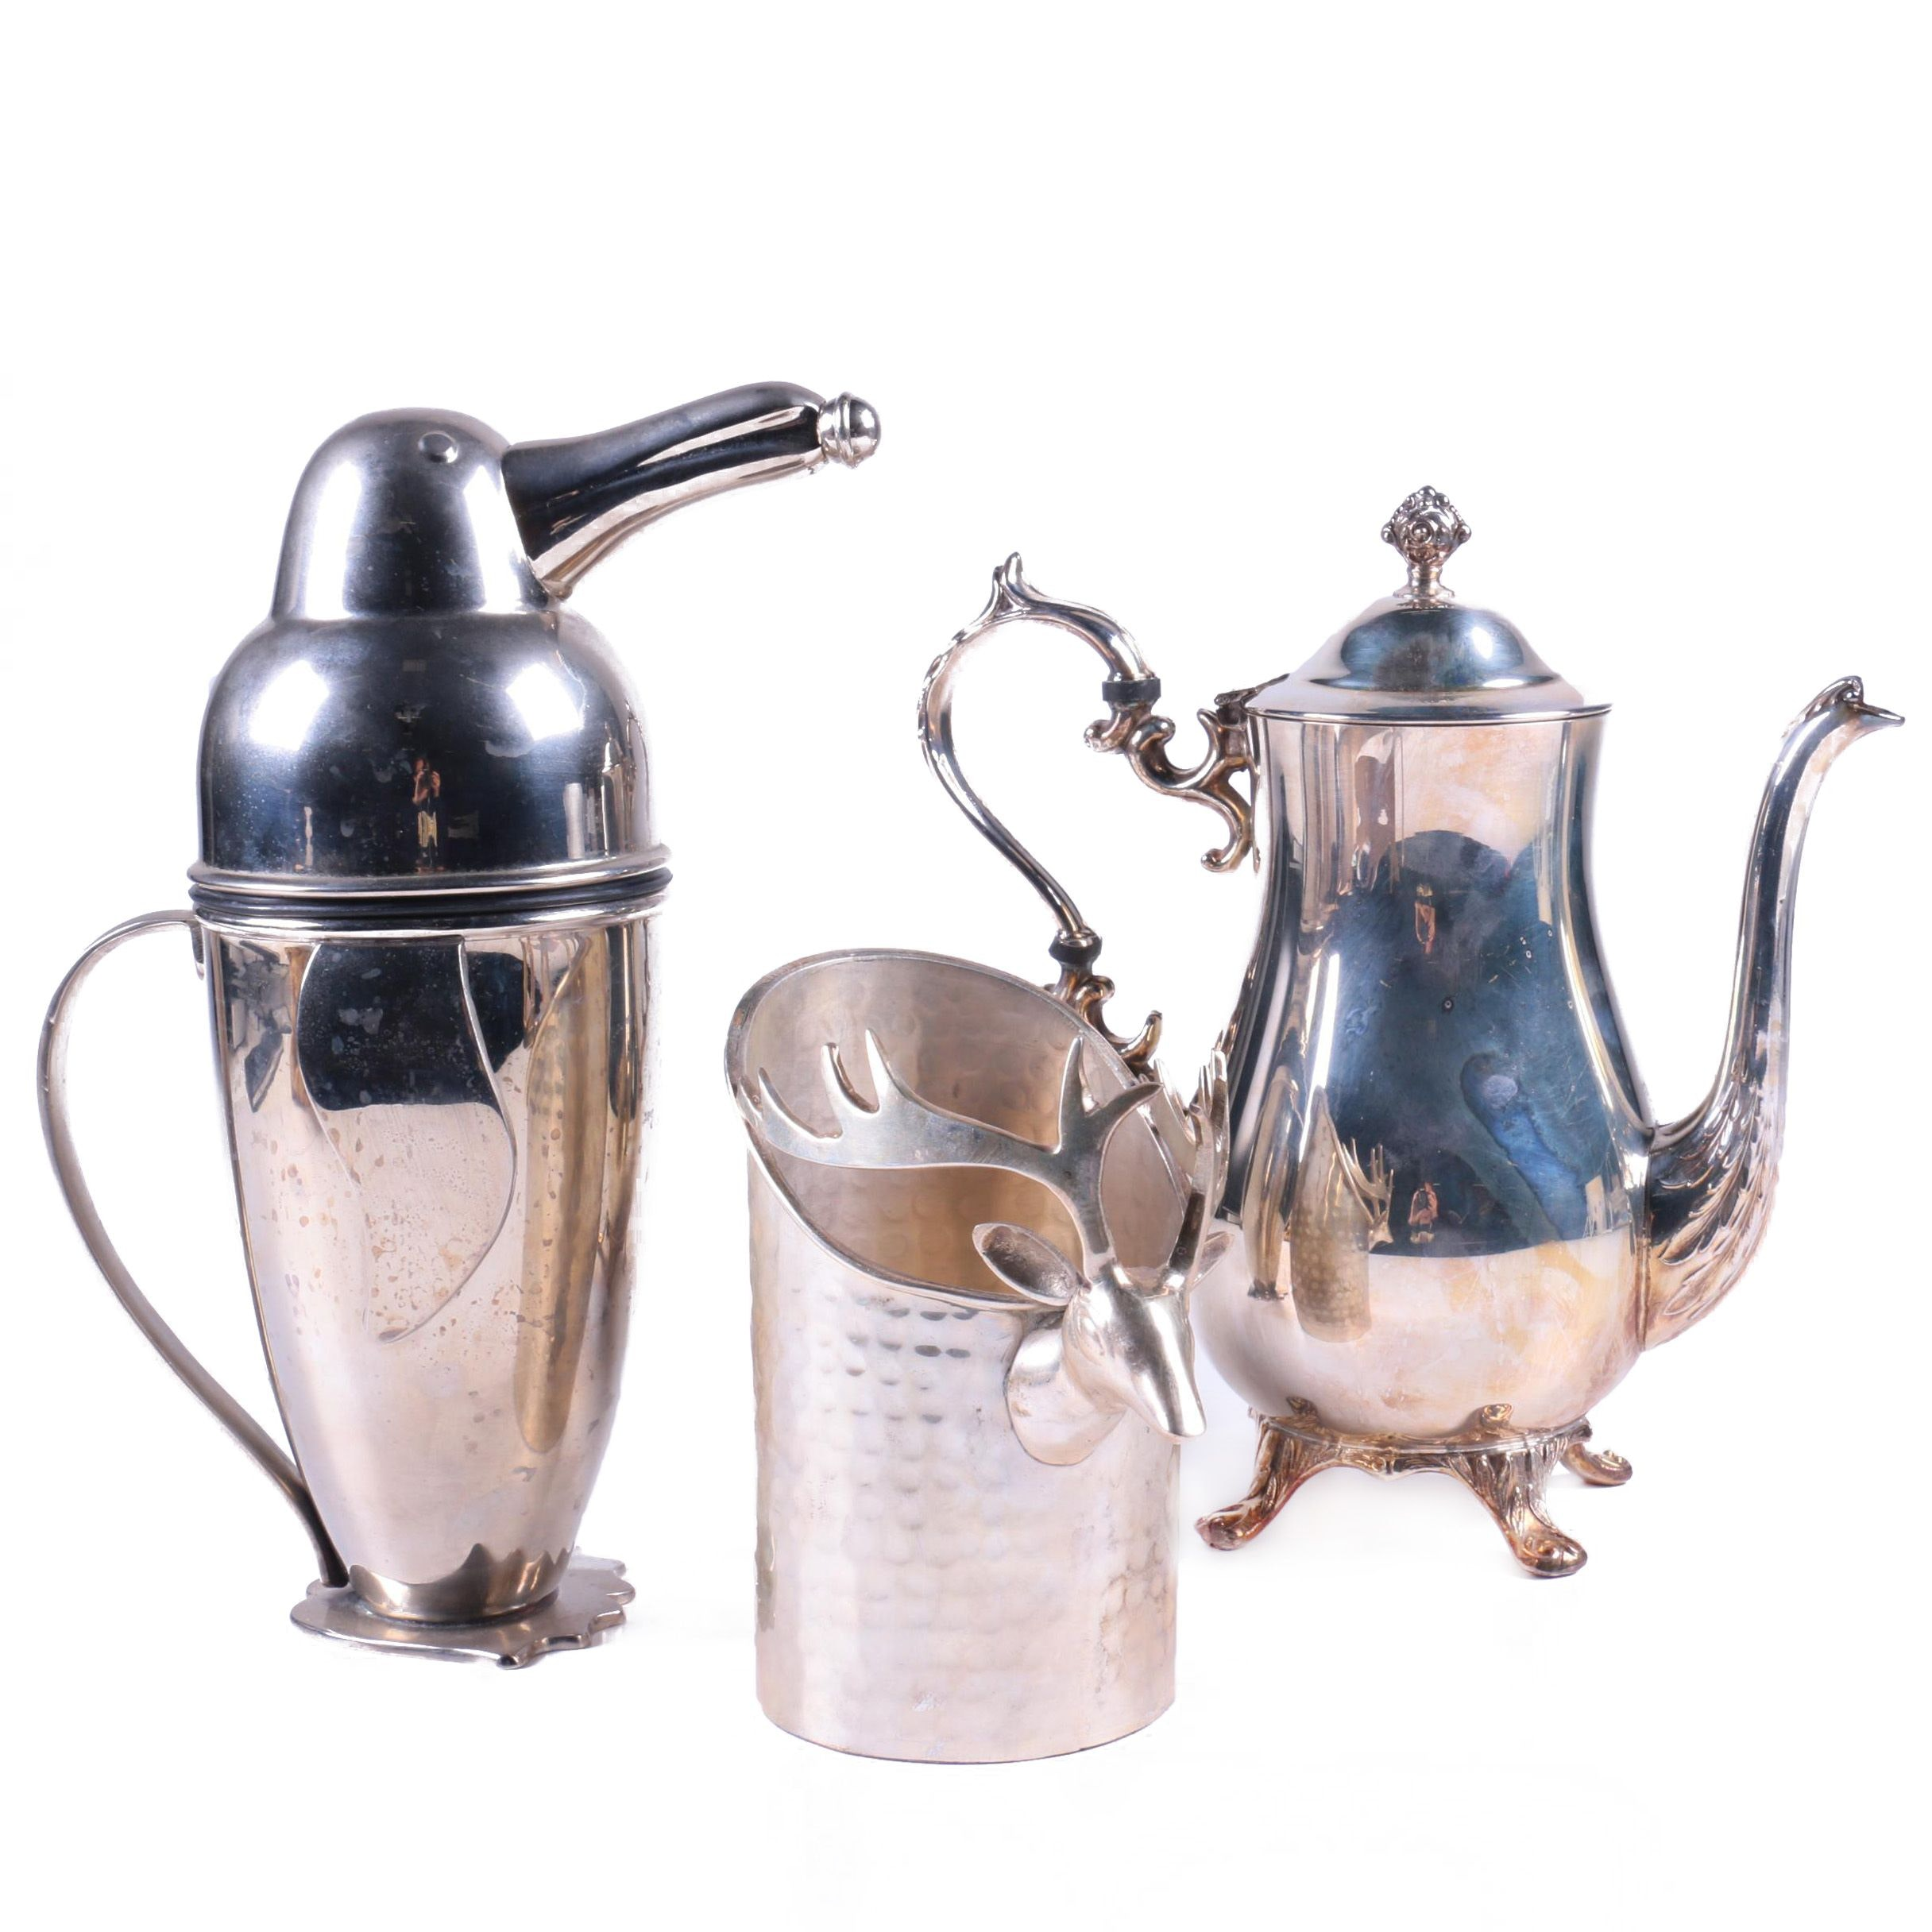 Silver Plate Vessels Featuring English Silver Mfg. Corp.